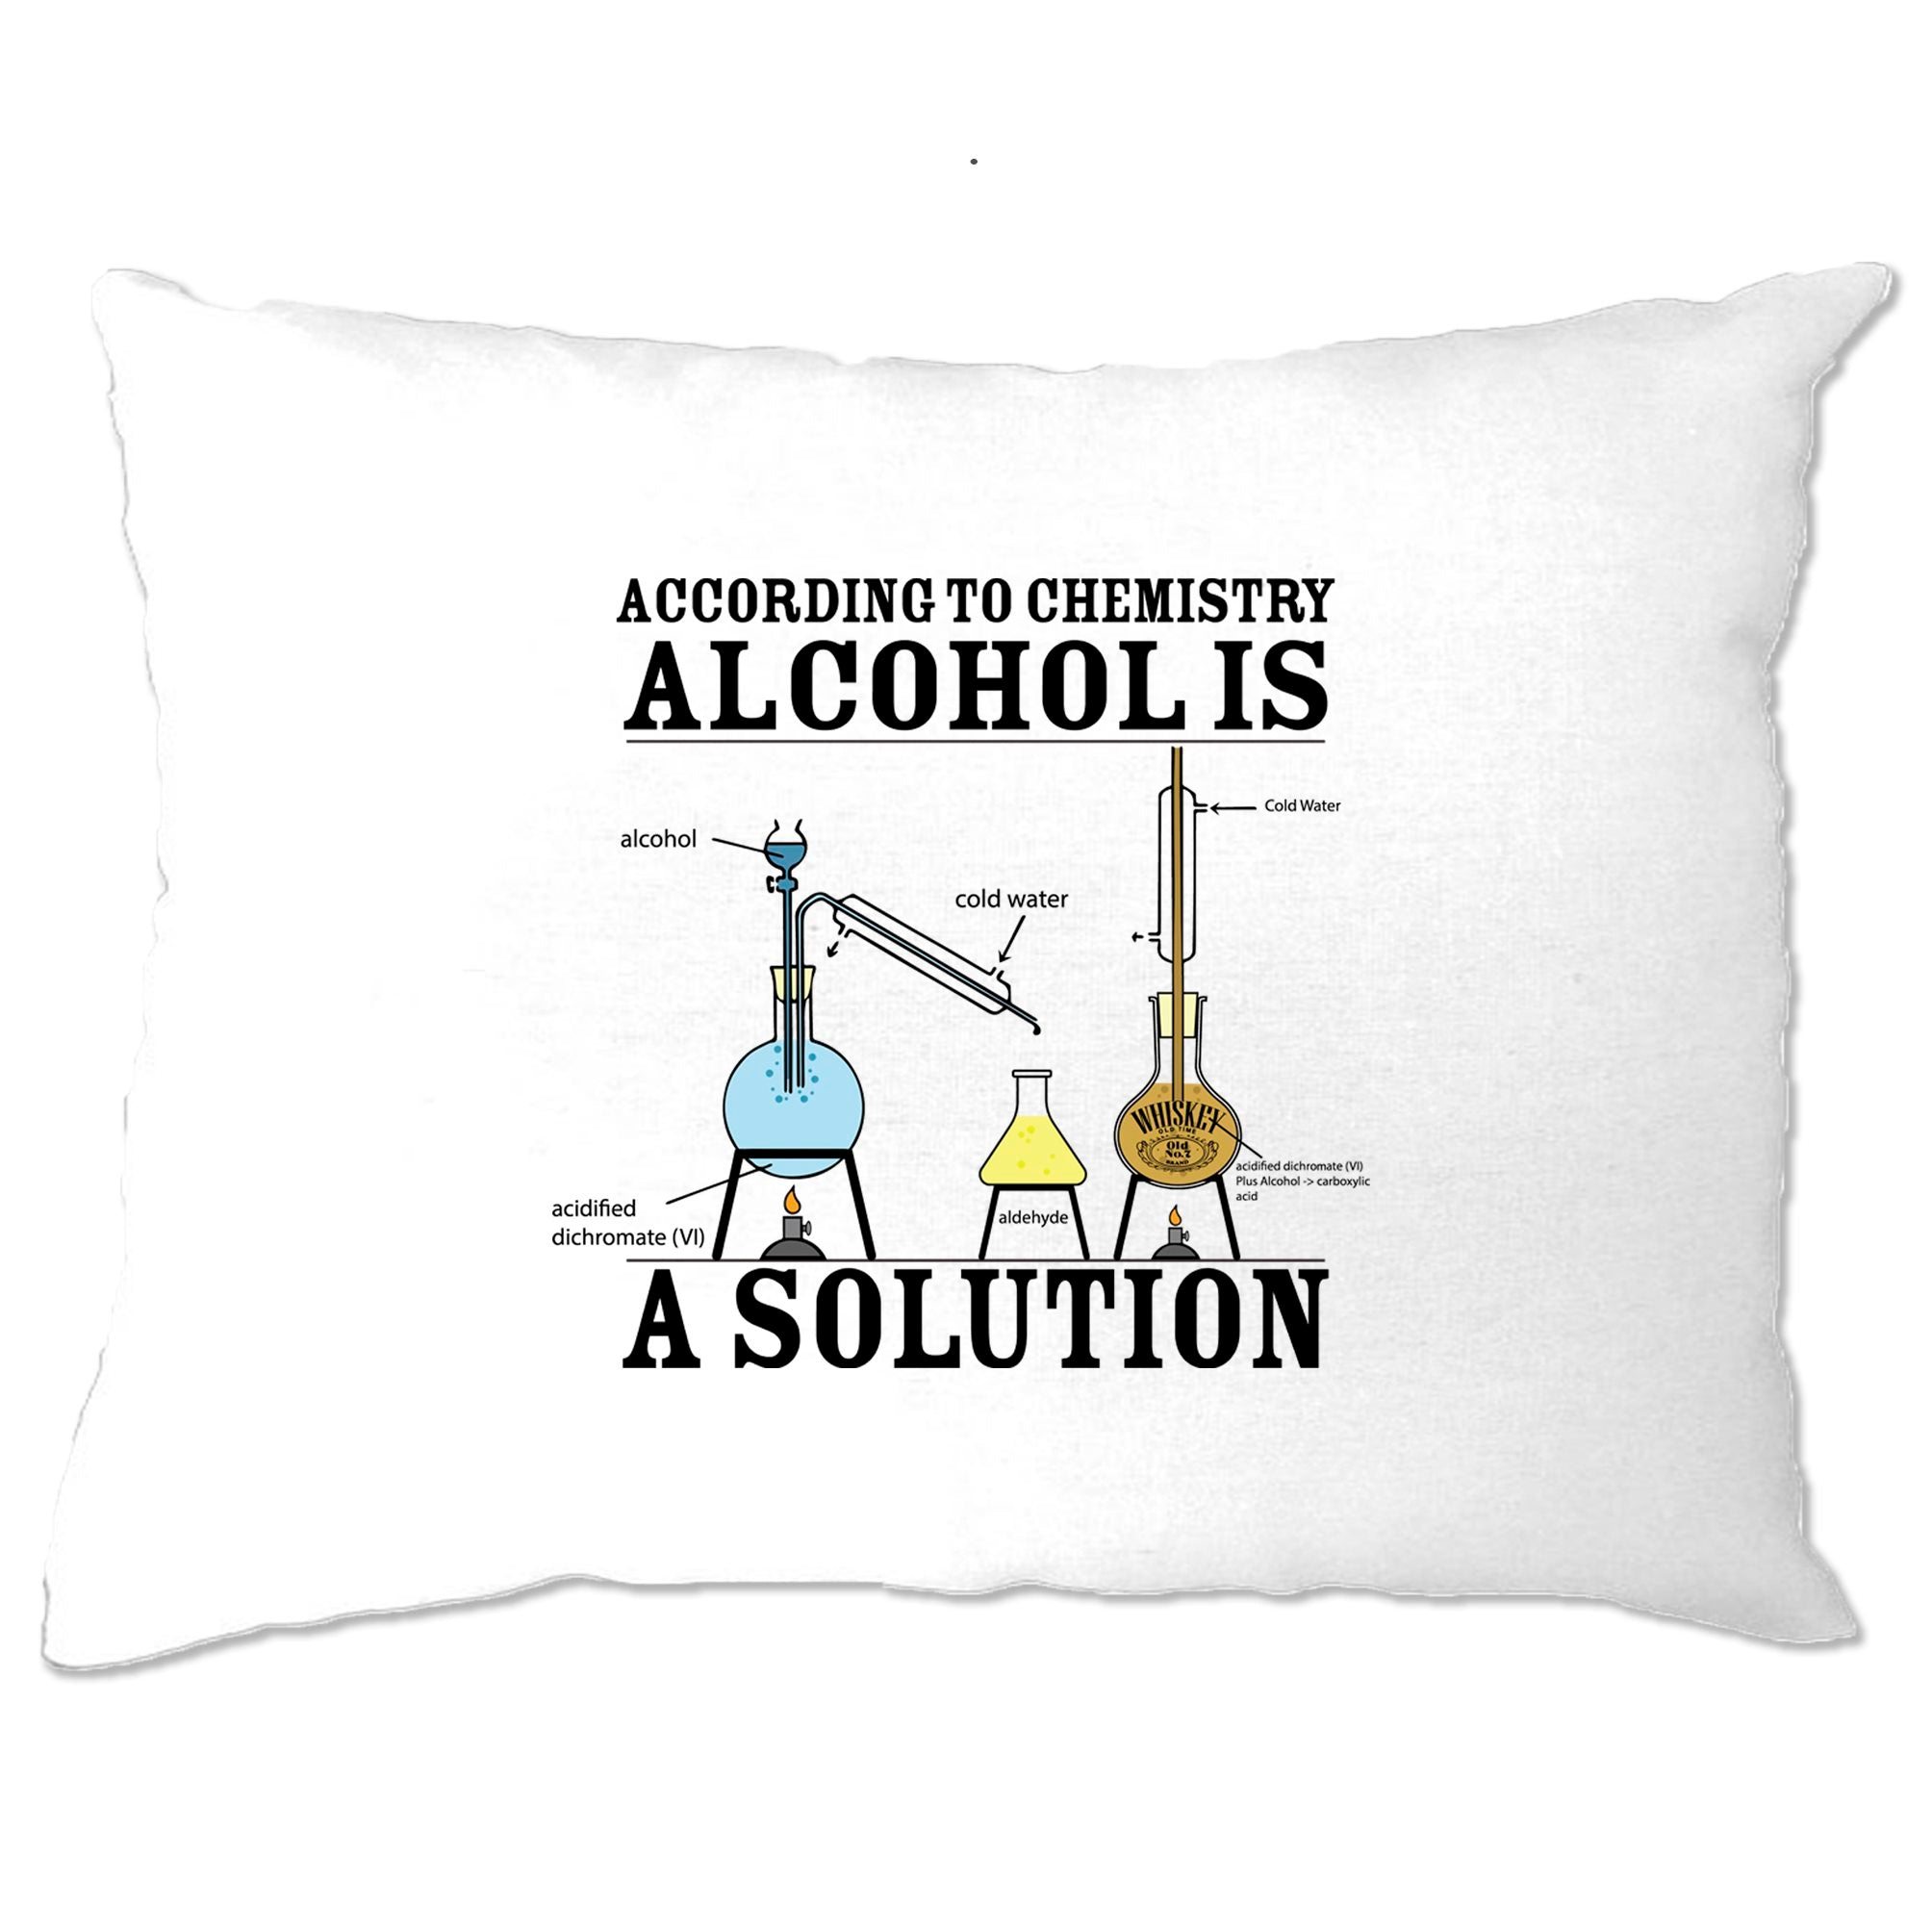 Pub Pillow Case According To Chemistry Alcohols a Solution